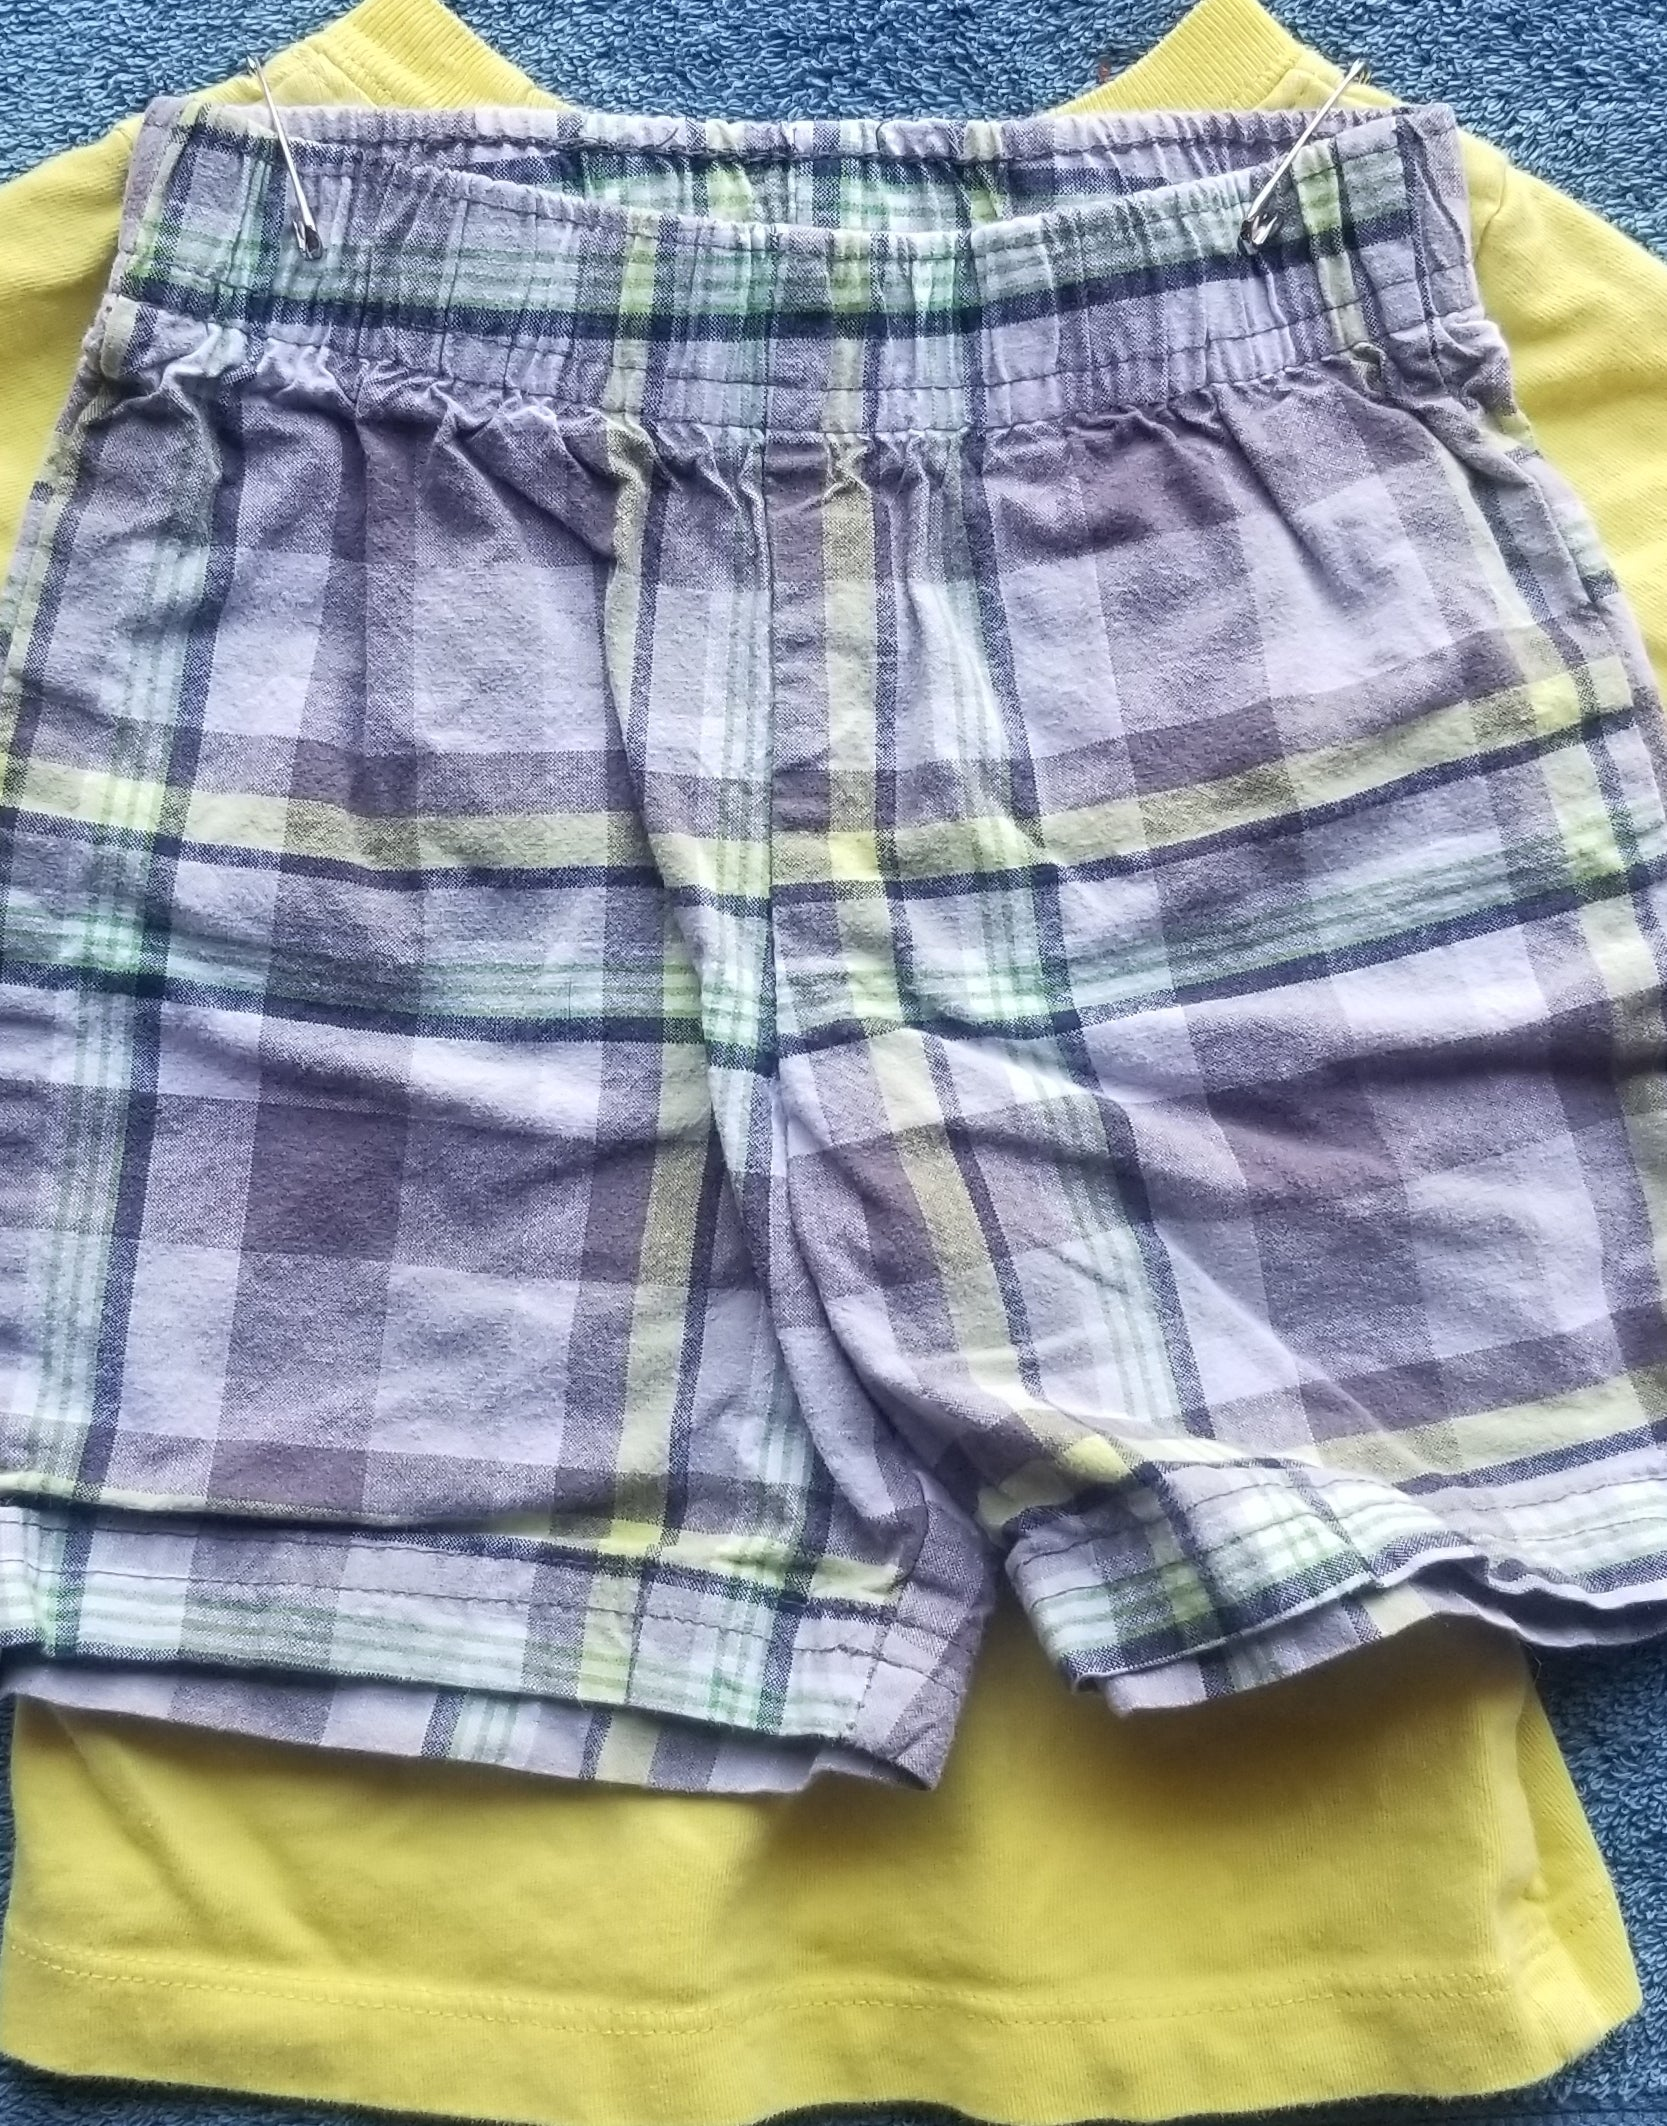 CARTERS 2PC outfit yellow short sleeve tee & grey/green/yellow plaid shorts boys 12m